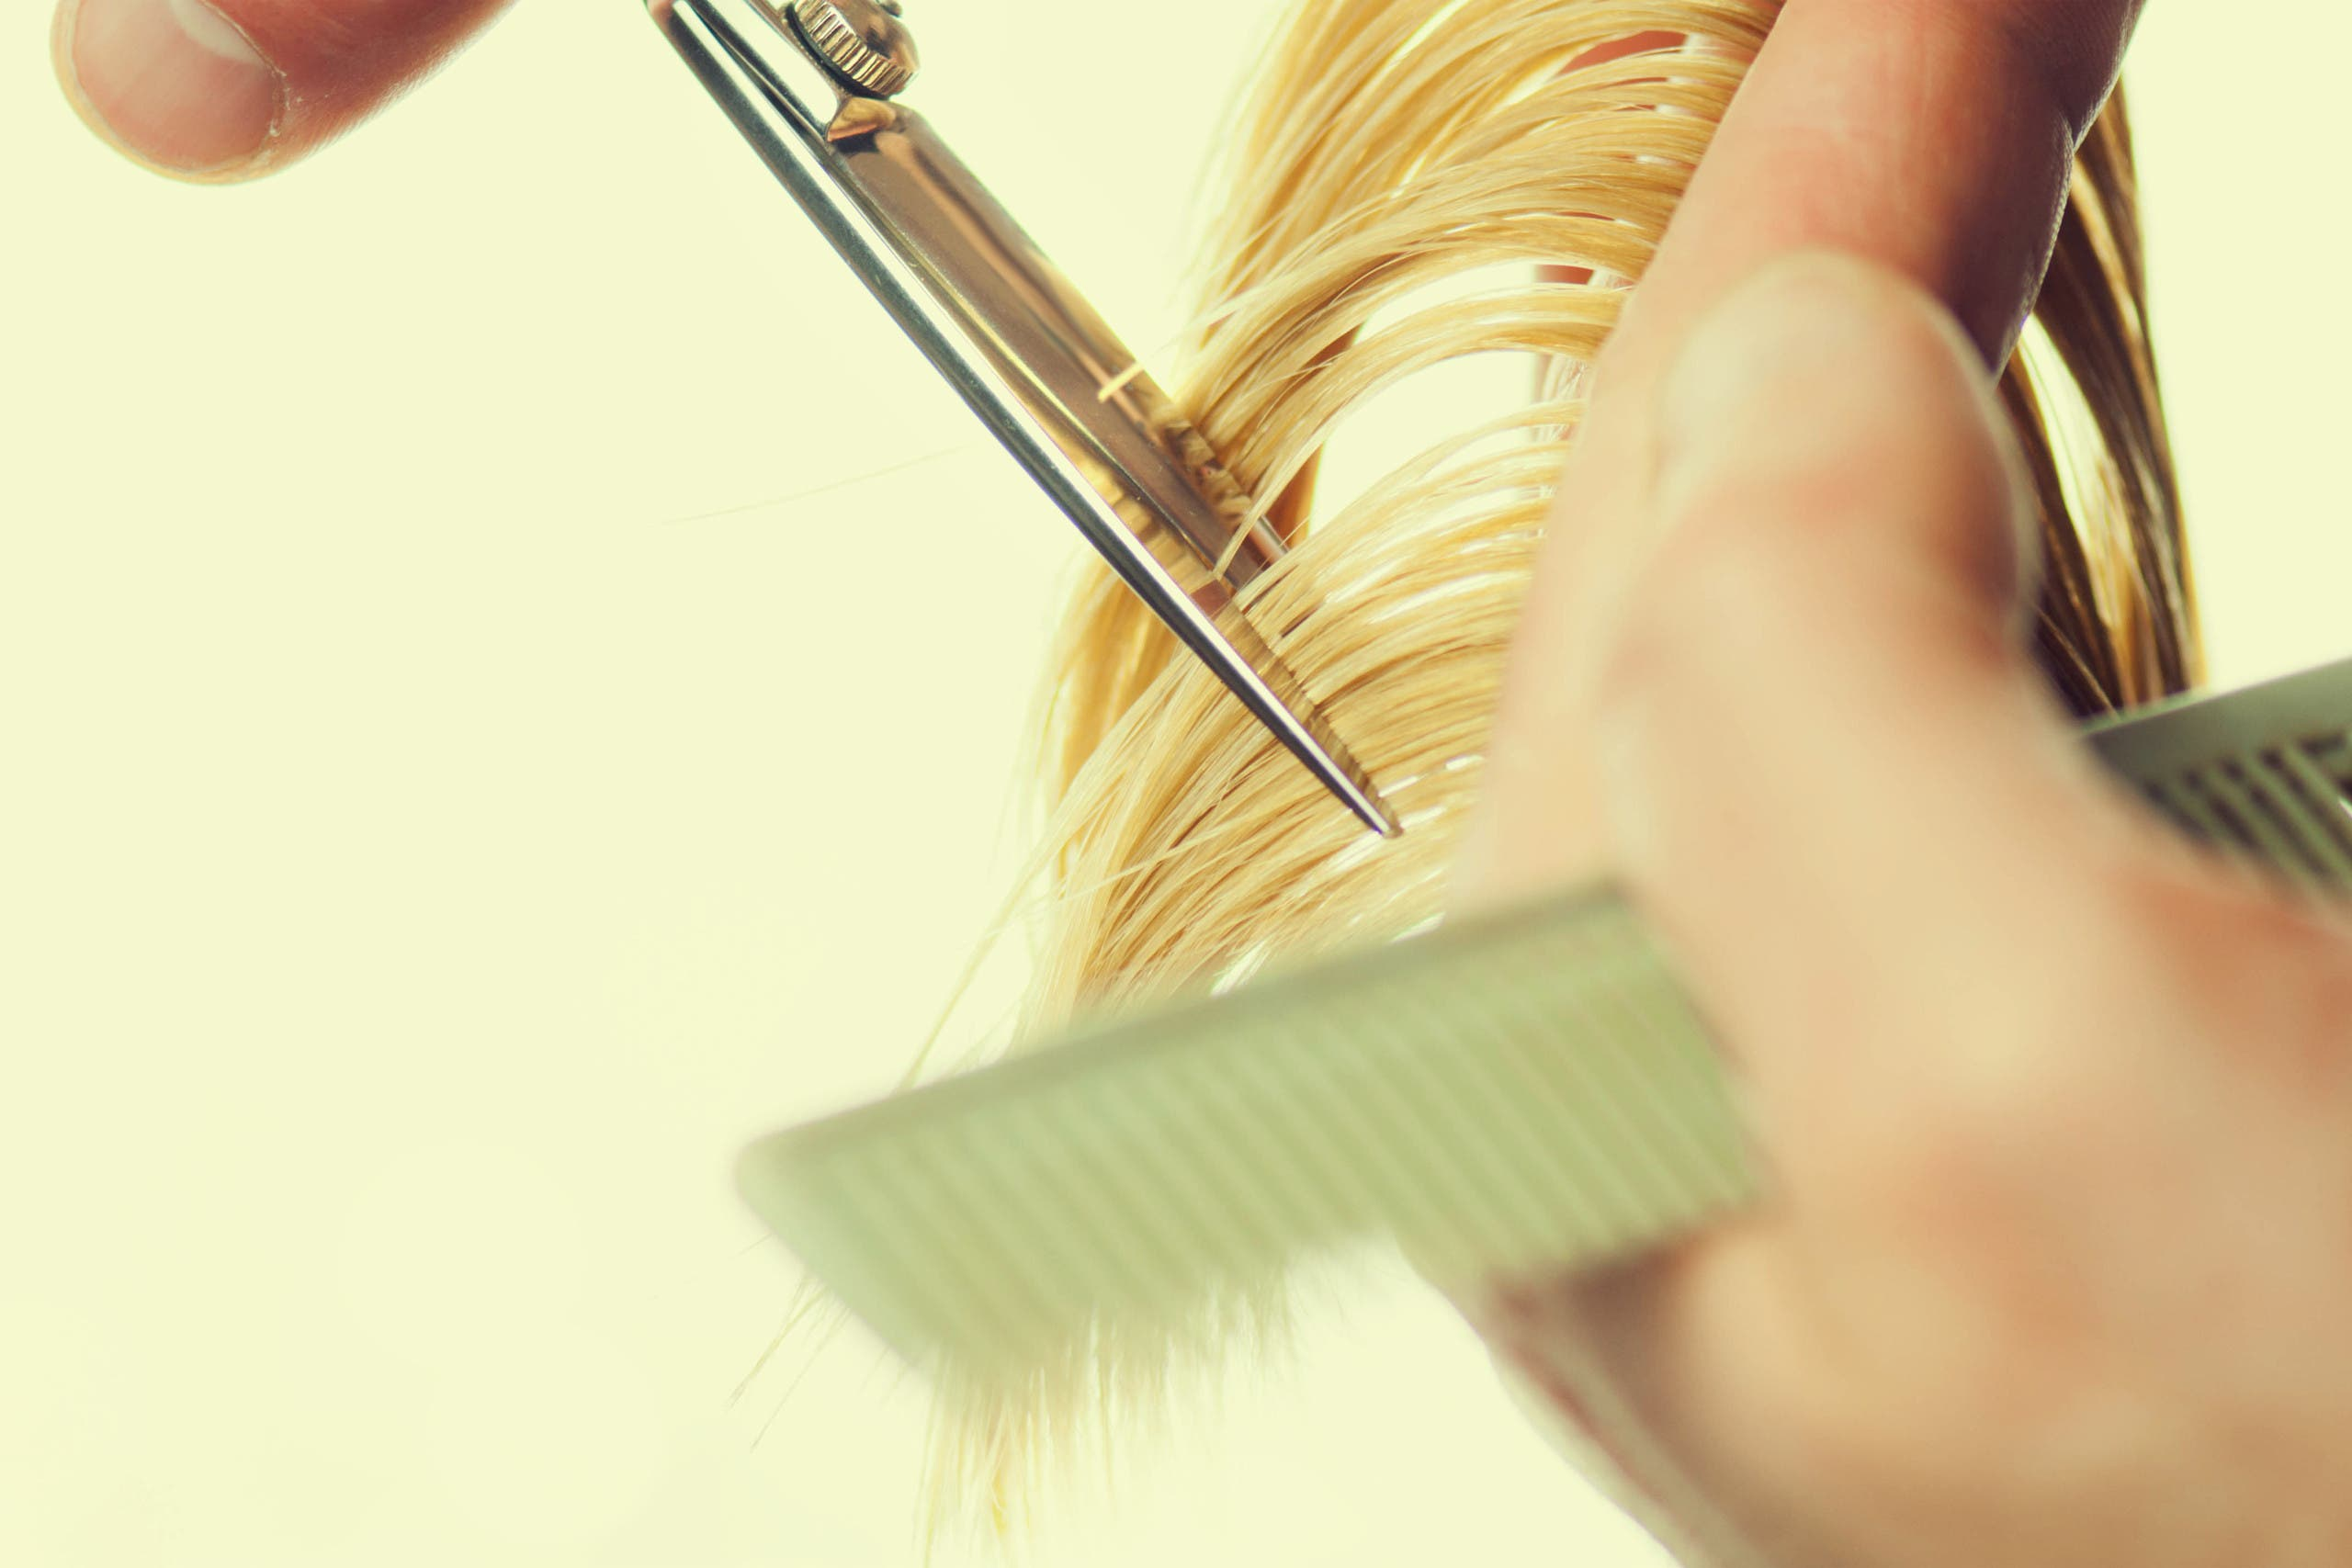 Cutting hair (shutterstock)